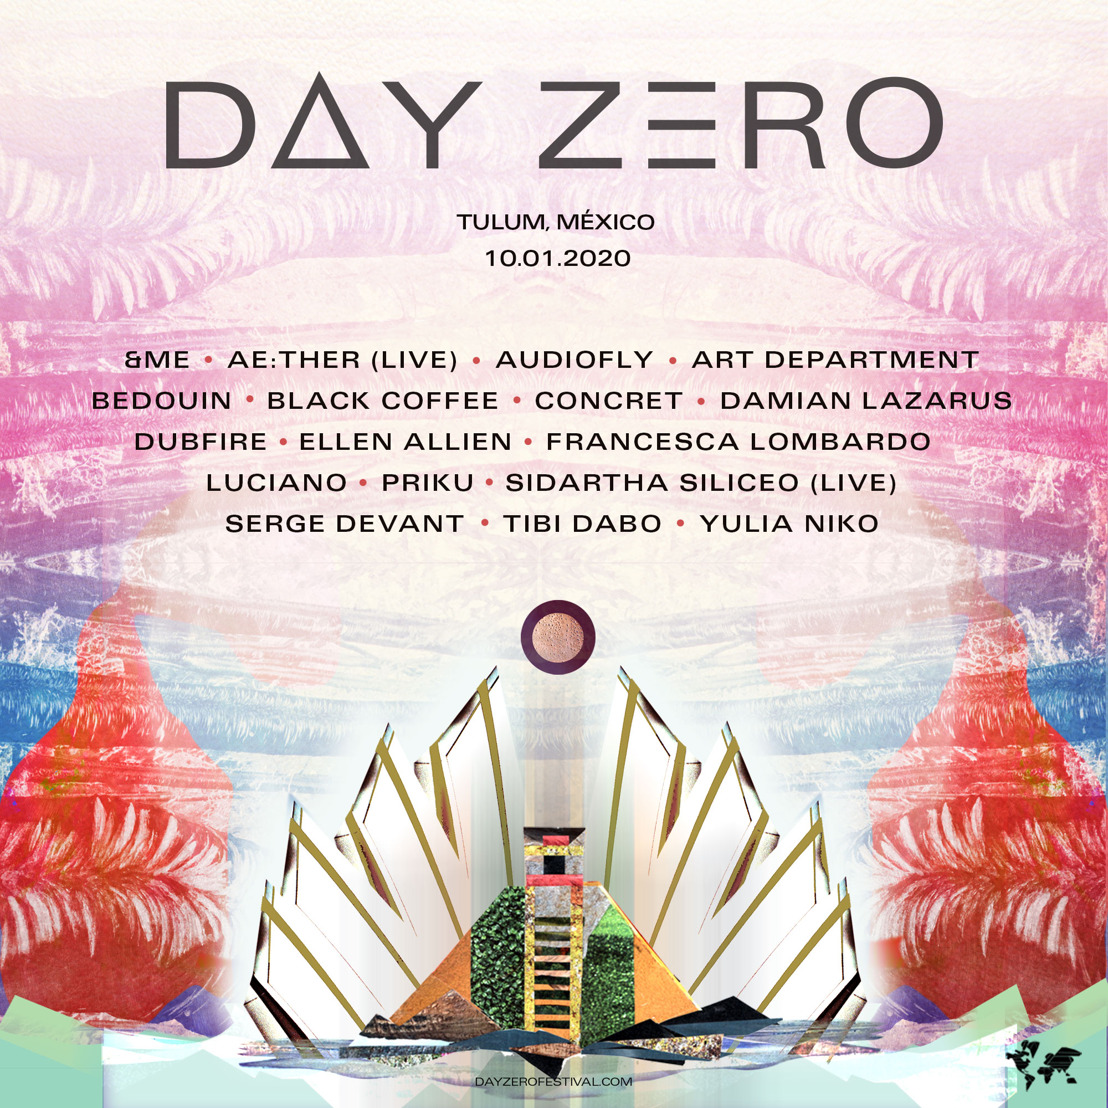 Day Zero Announces Lineup for 2020 Return to Tulum January 10th